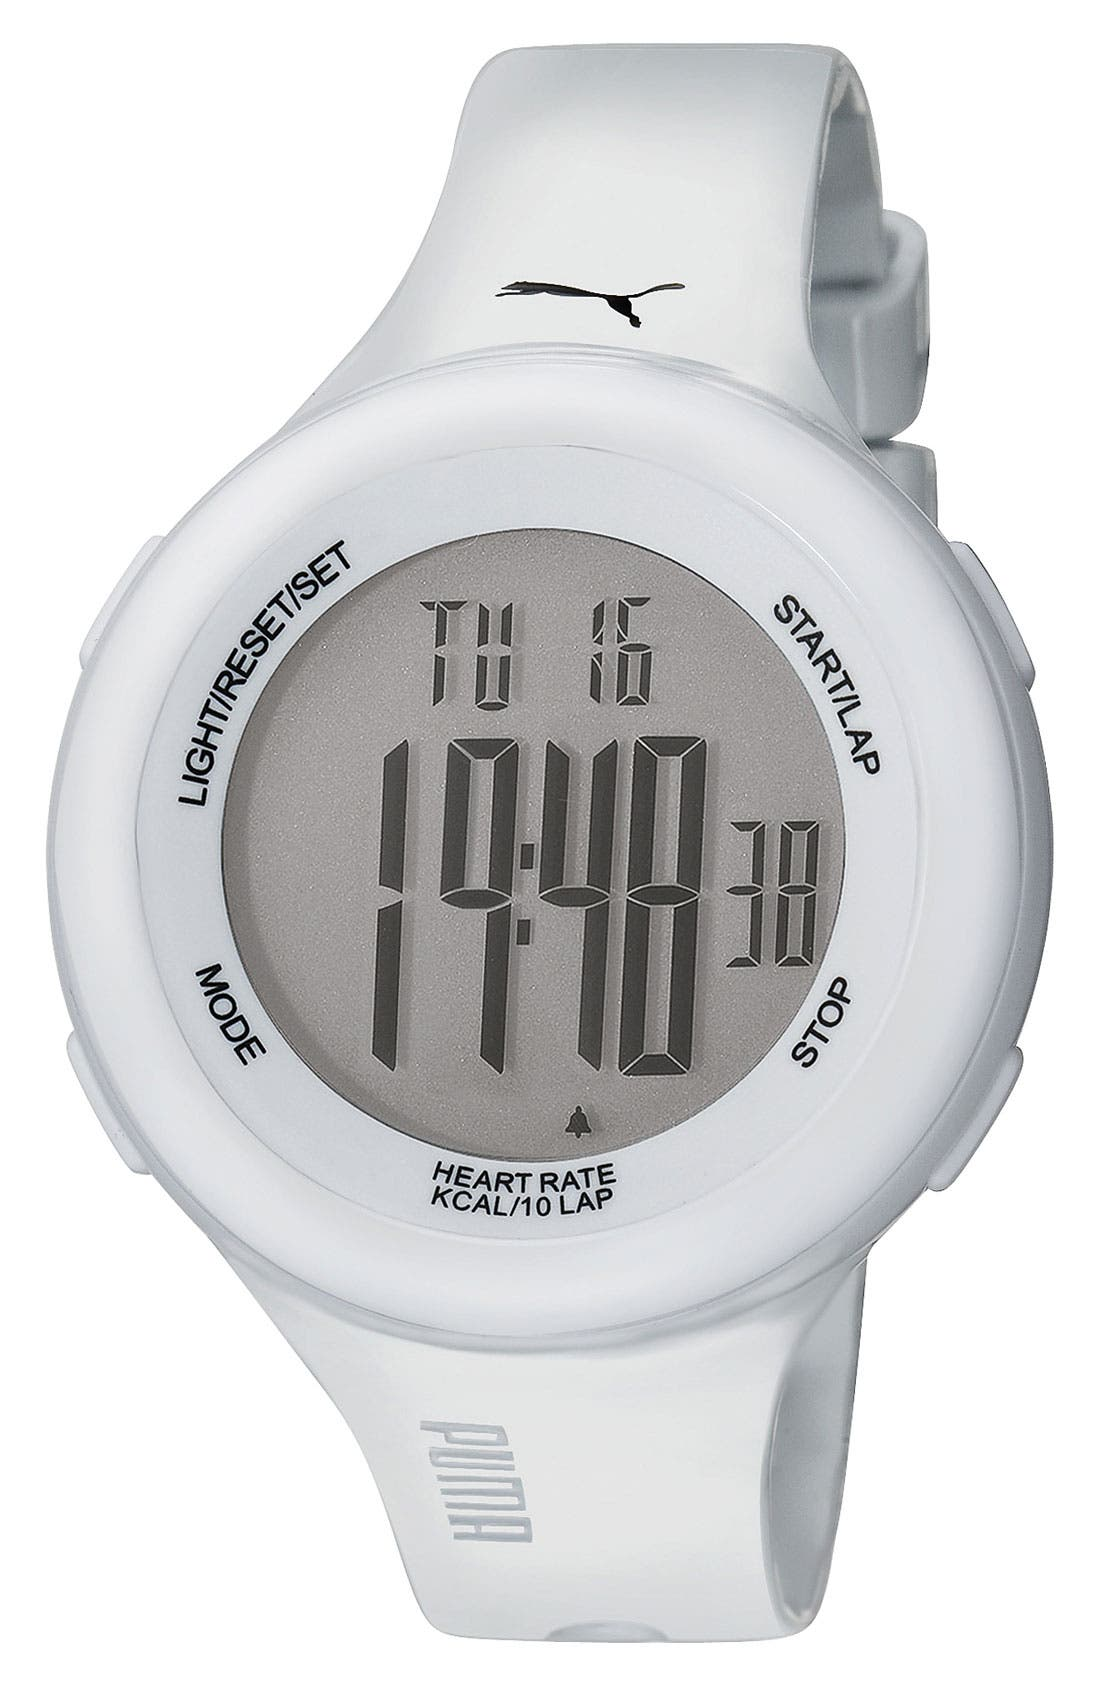 Main Image - PUMA 'Fit' Heart Rate Monitor Watch, 38mm